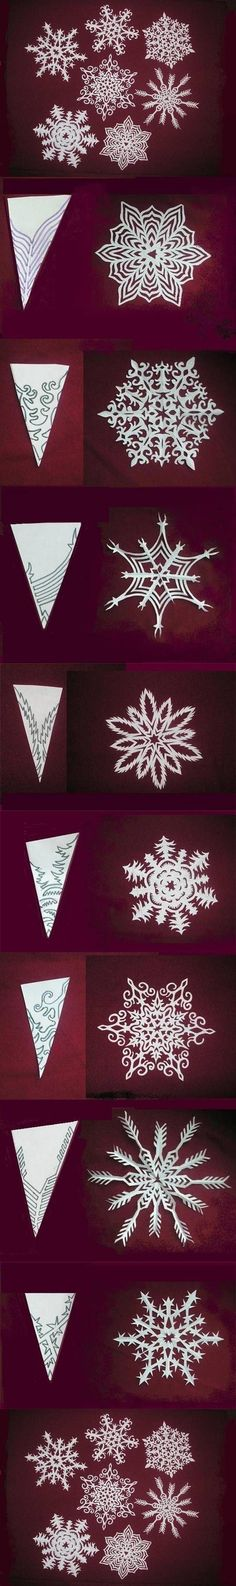 DIY Snowflakes Paper Pattern Tutorial DIY Projects | UsefulDIY.com #make #snowflake